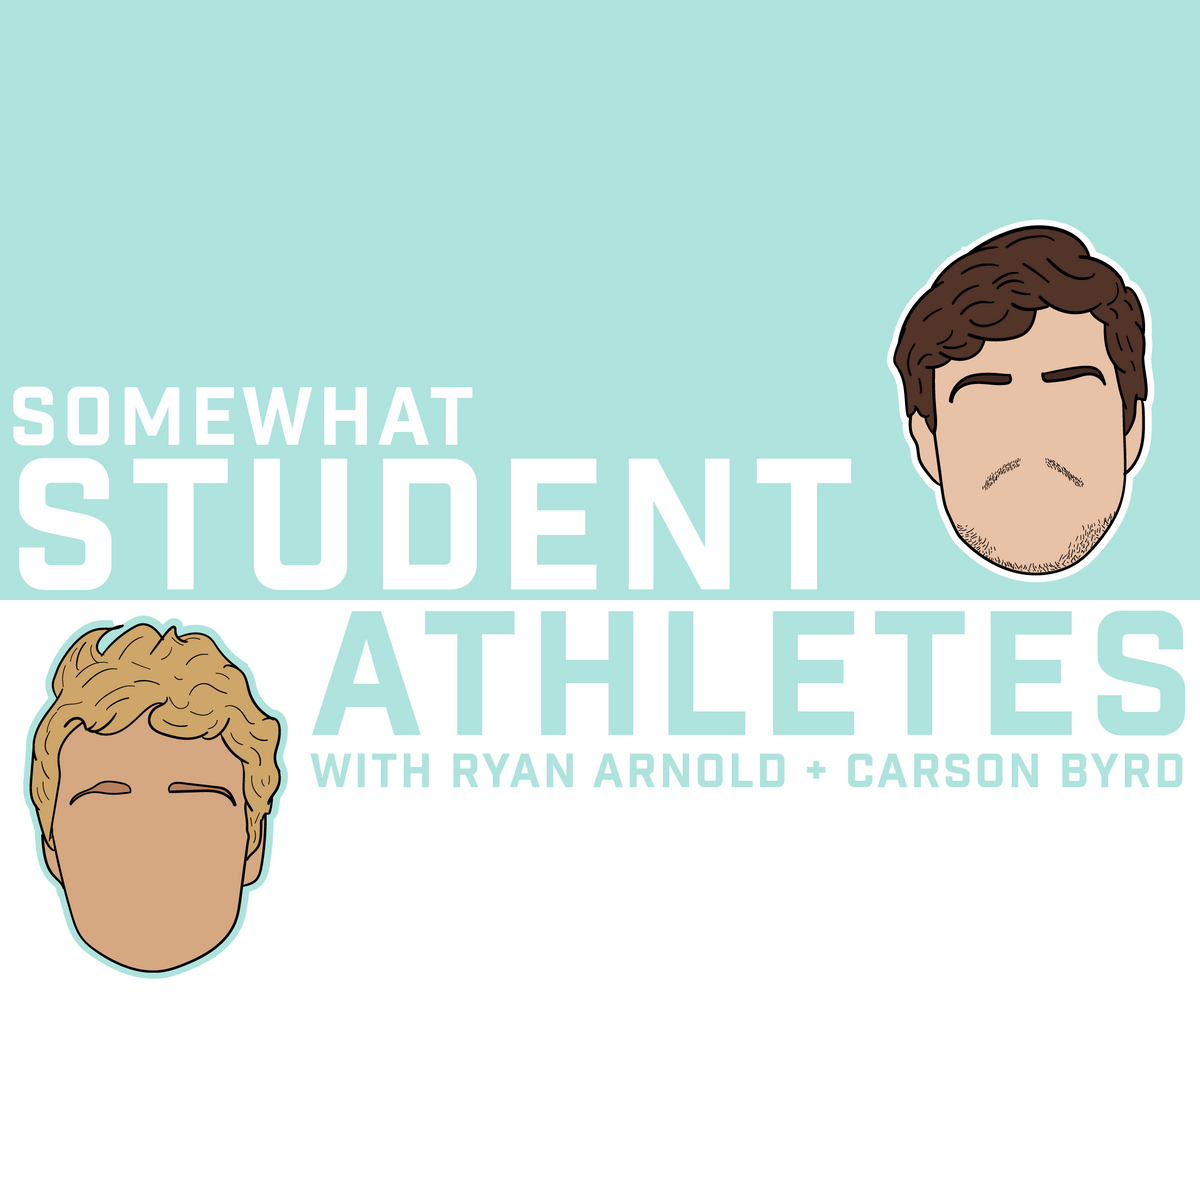 Somewhat Student Athletes with Ryan Arnold and Carson Byrd